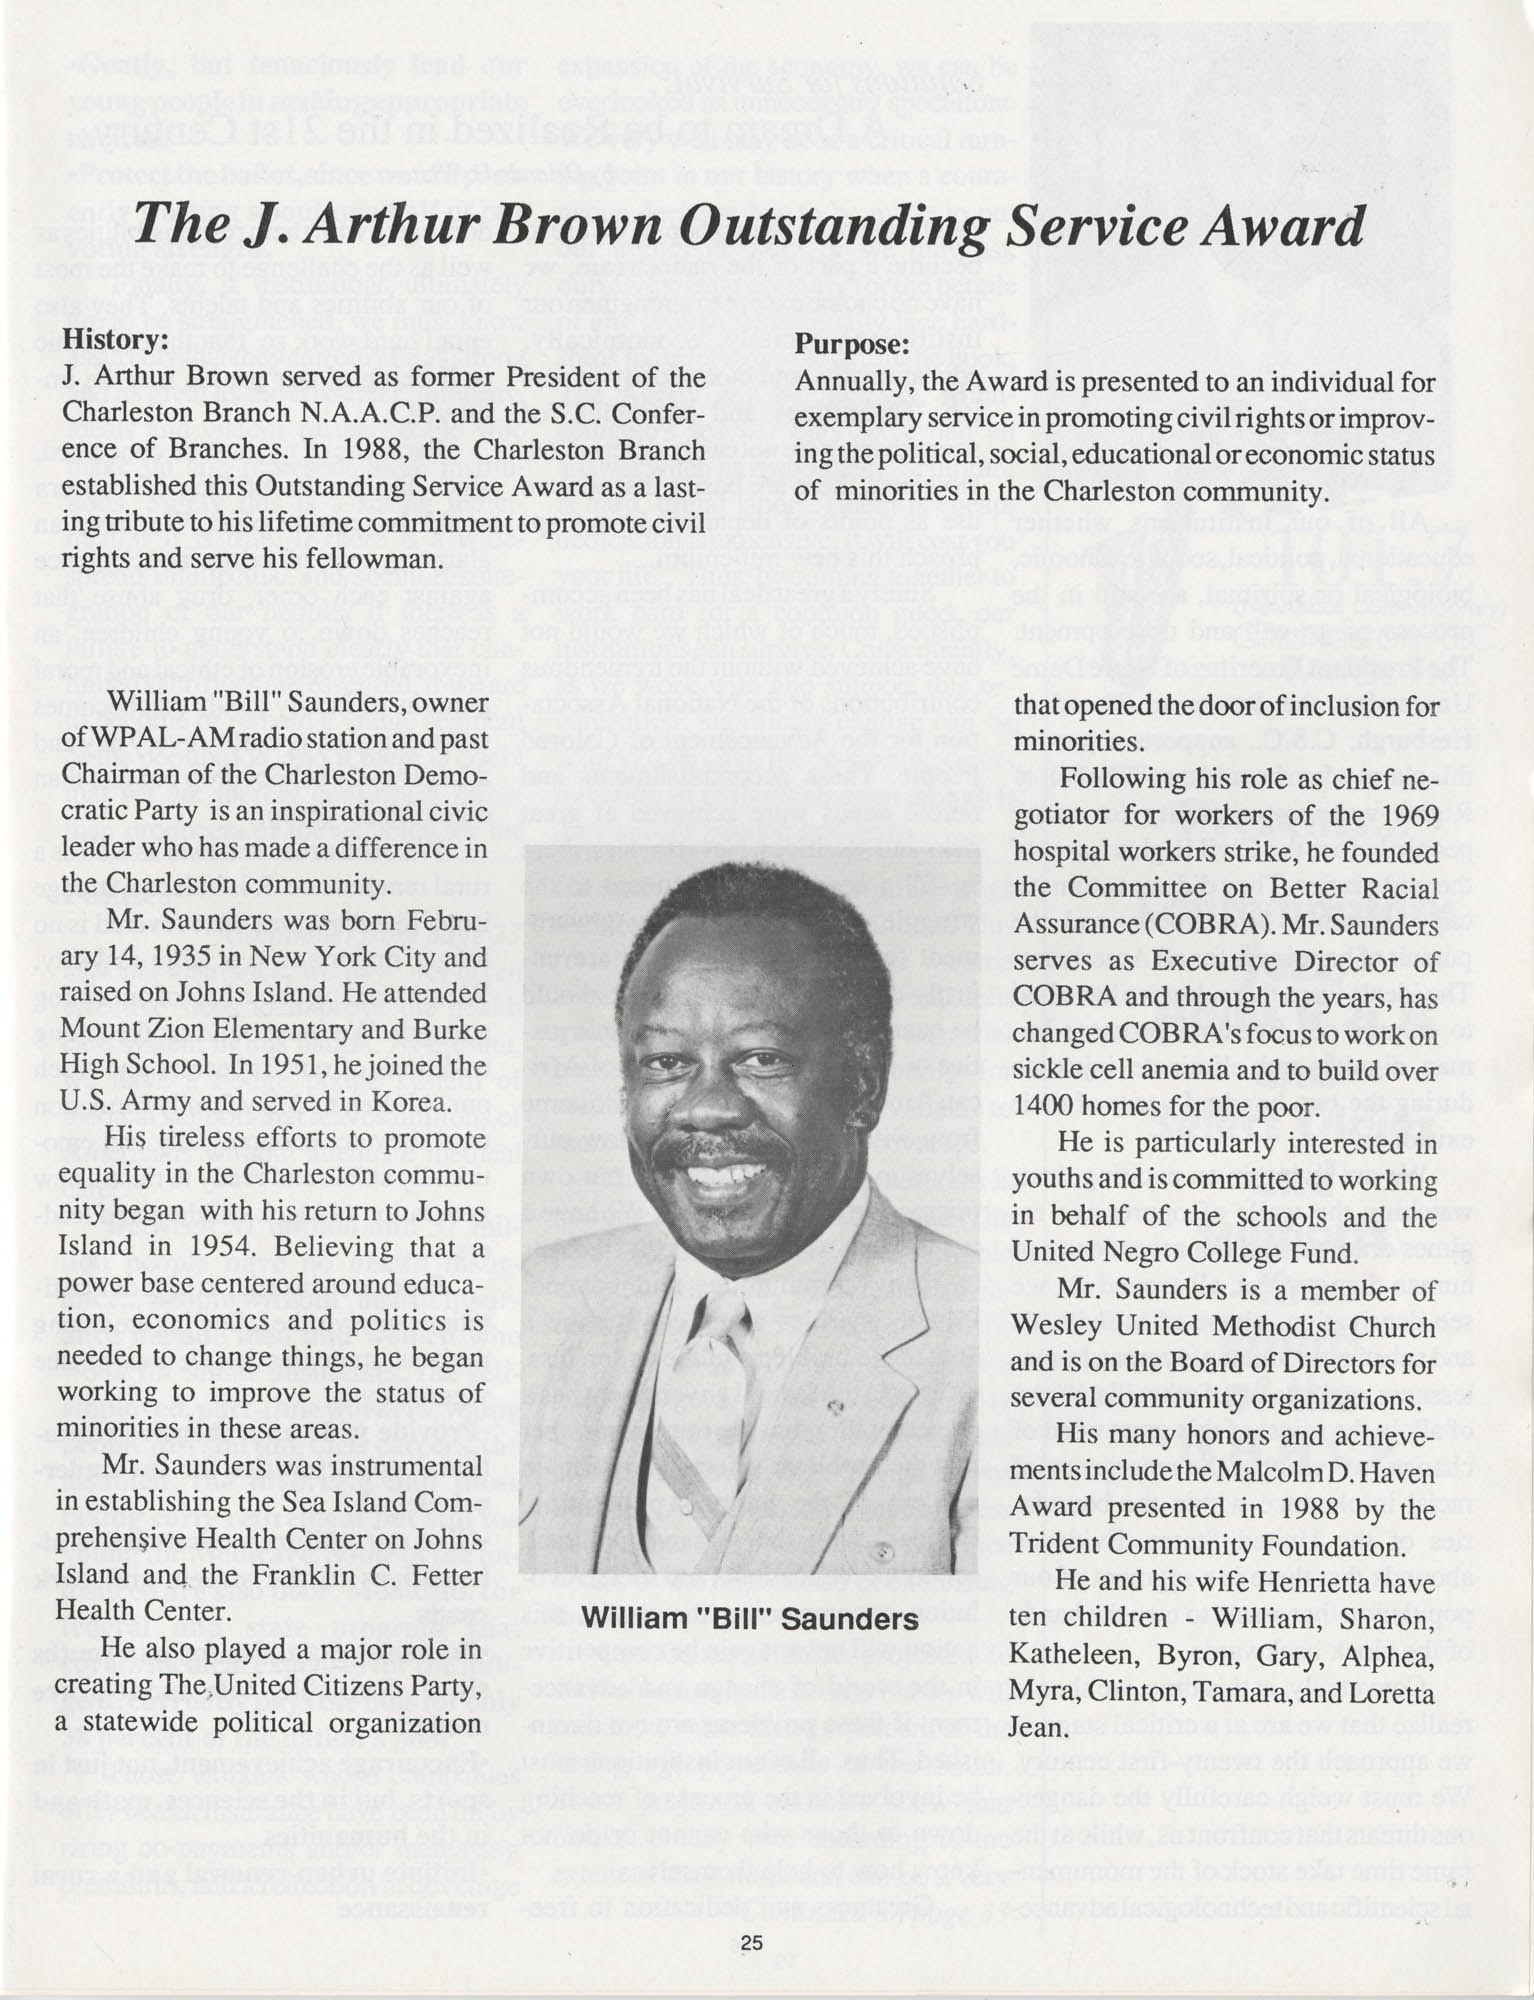 1990 NAACP Freedom Fund Magazine, Charleston Branch of the NAACP, 74th Anniversary, Page 25